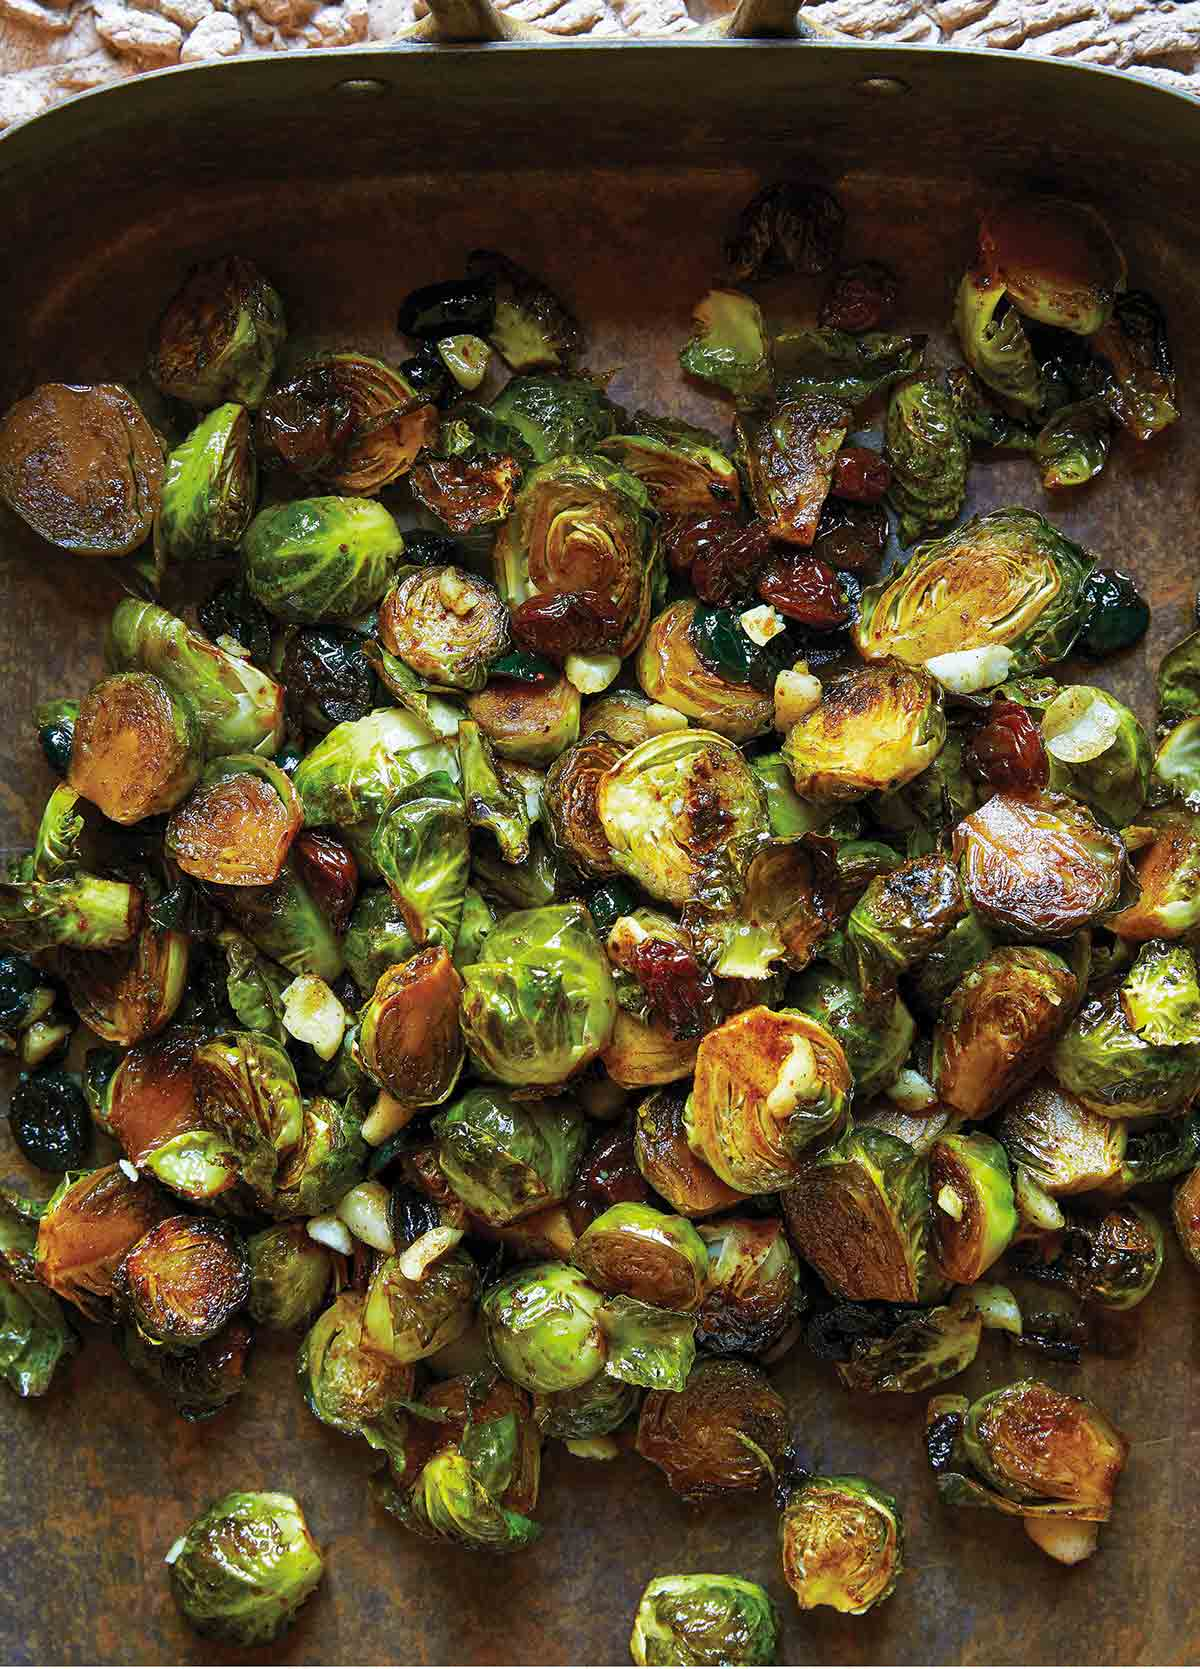 A roasting pan filled with spicy roasted Brussels sprouts, dried cranberries, and a sprinkling of macadamia nuts.